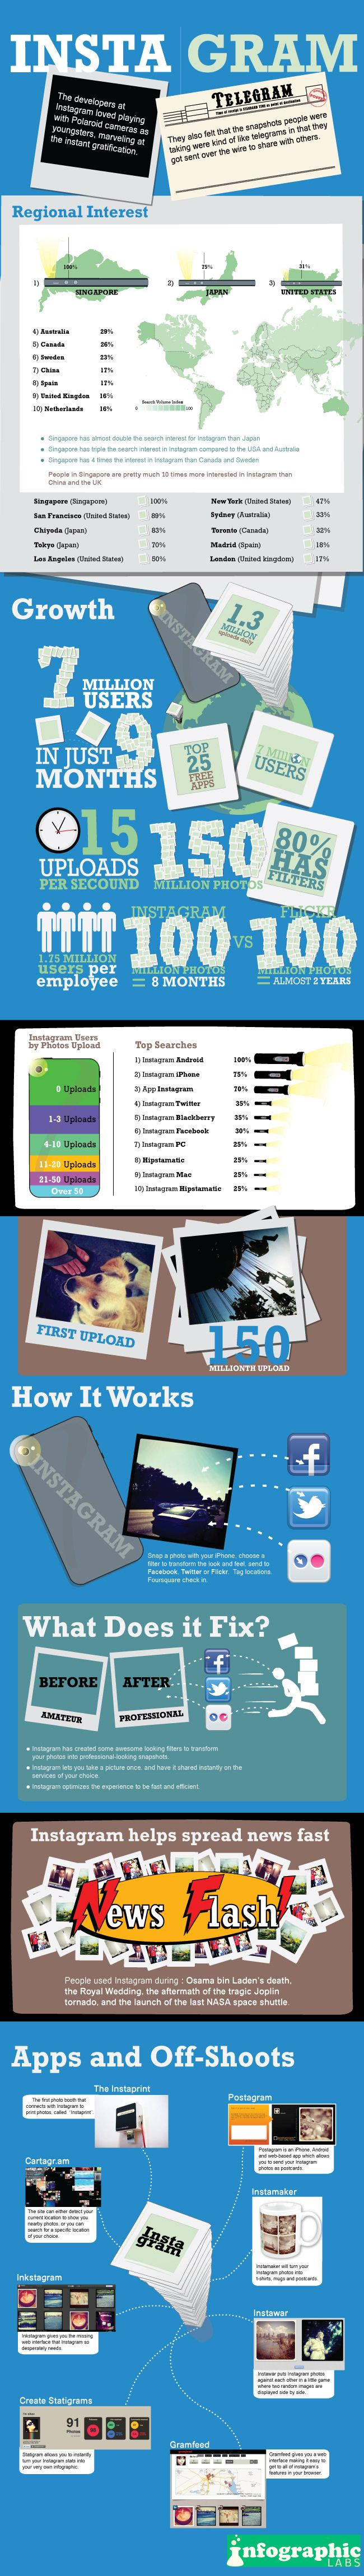 #Infographic - The Rise of #Instagram